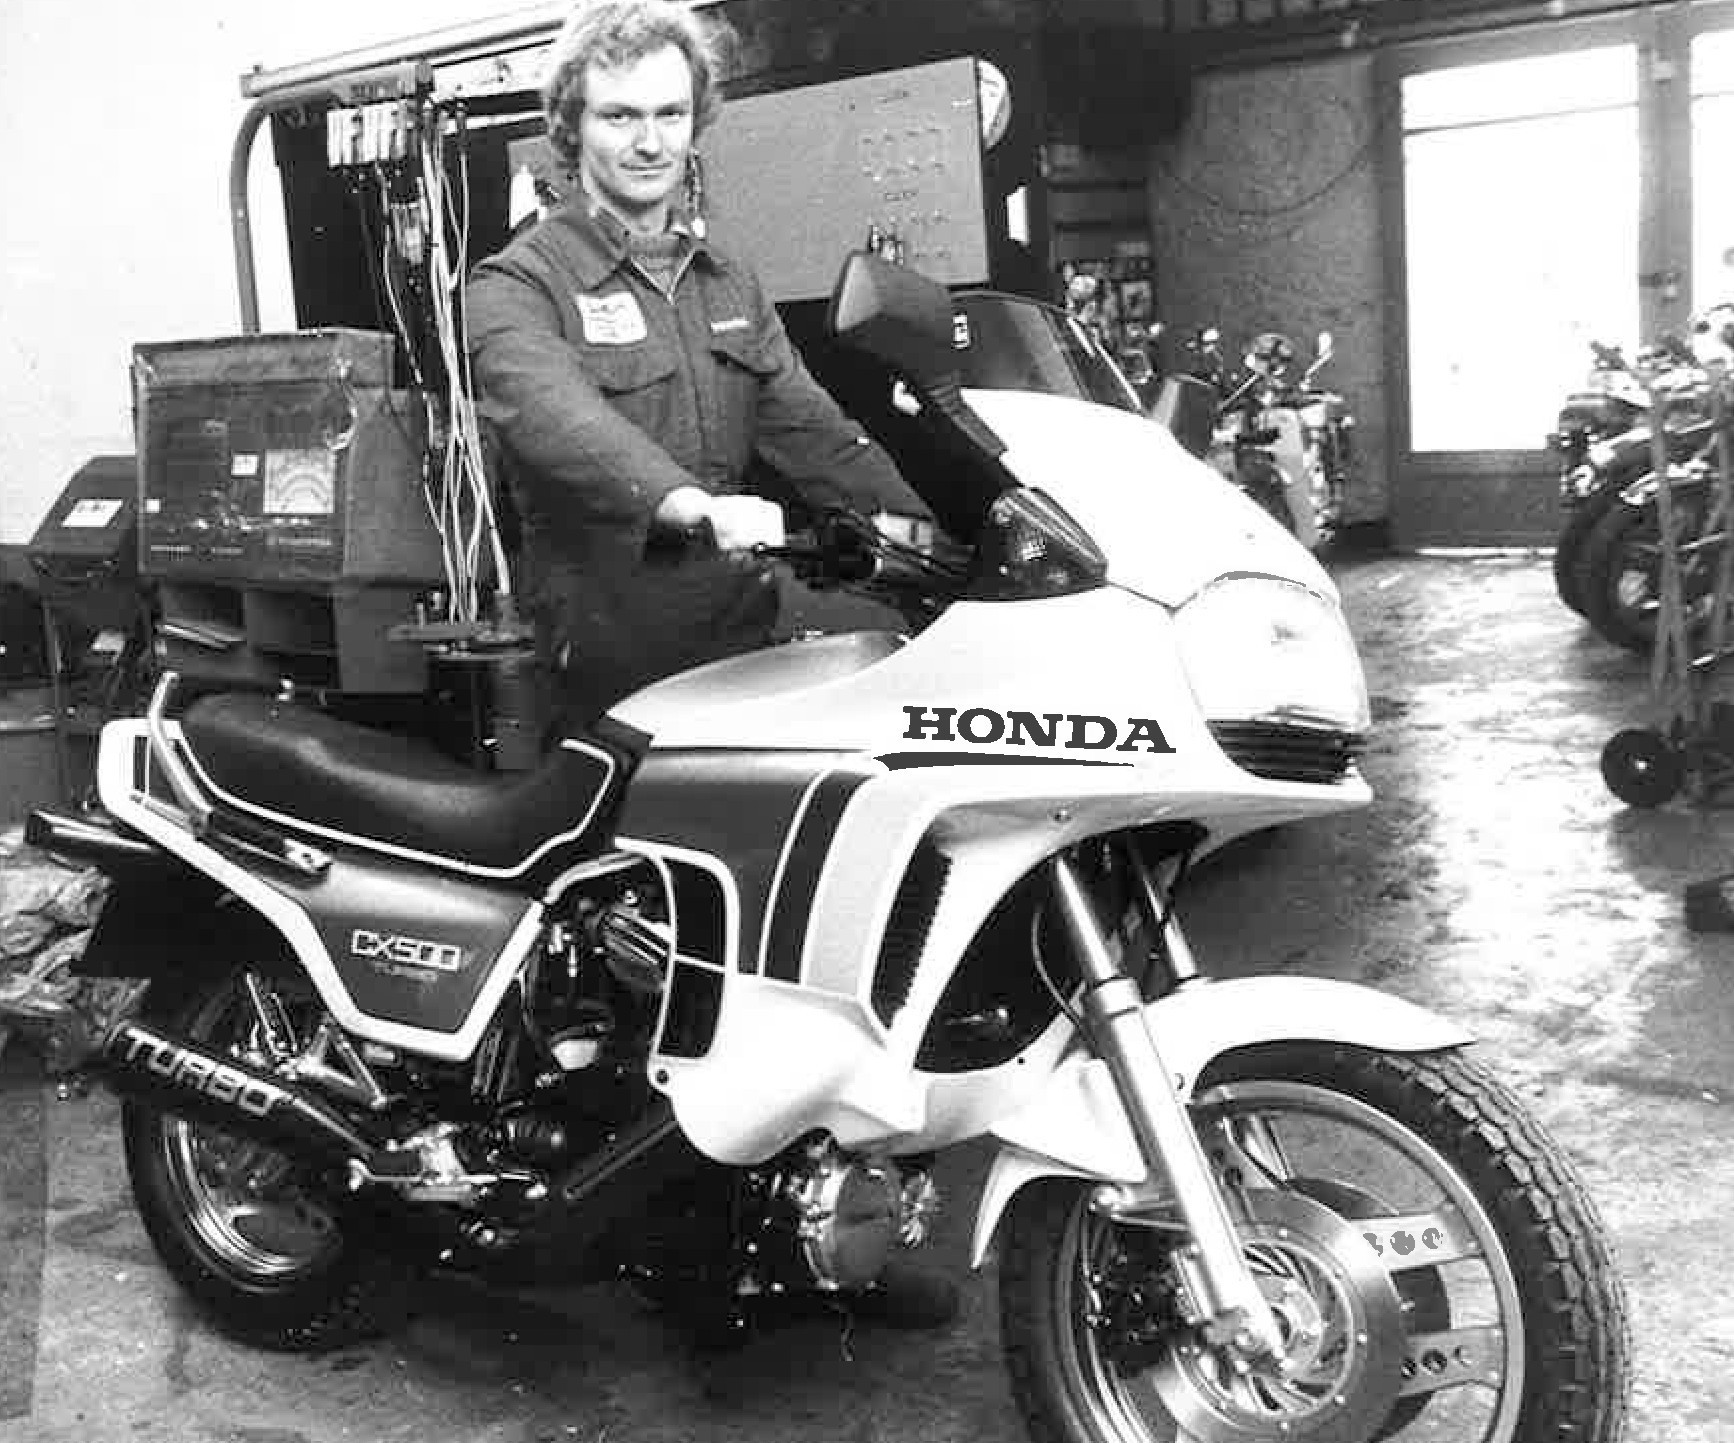 Ian Kirk with a Honda CX 500 Turbo, pictured in 1982